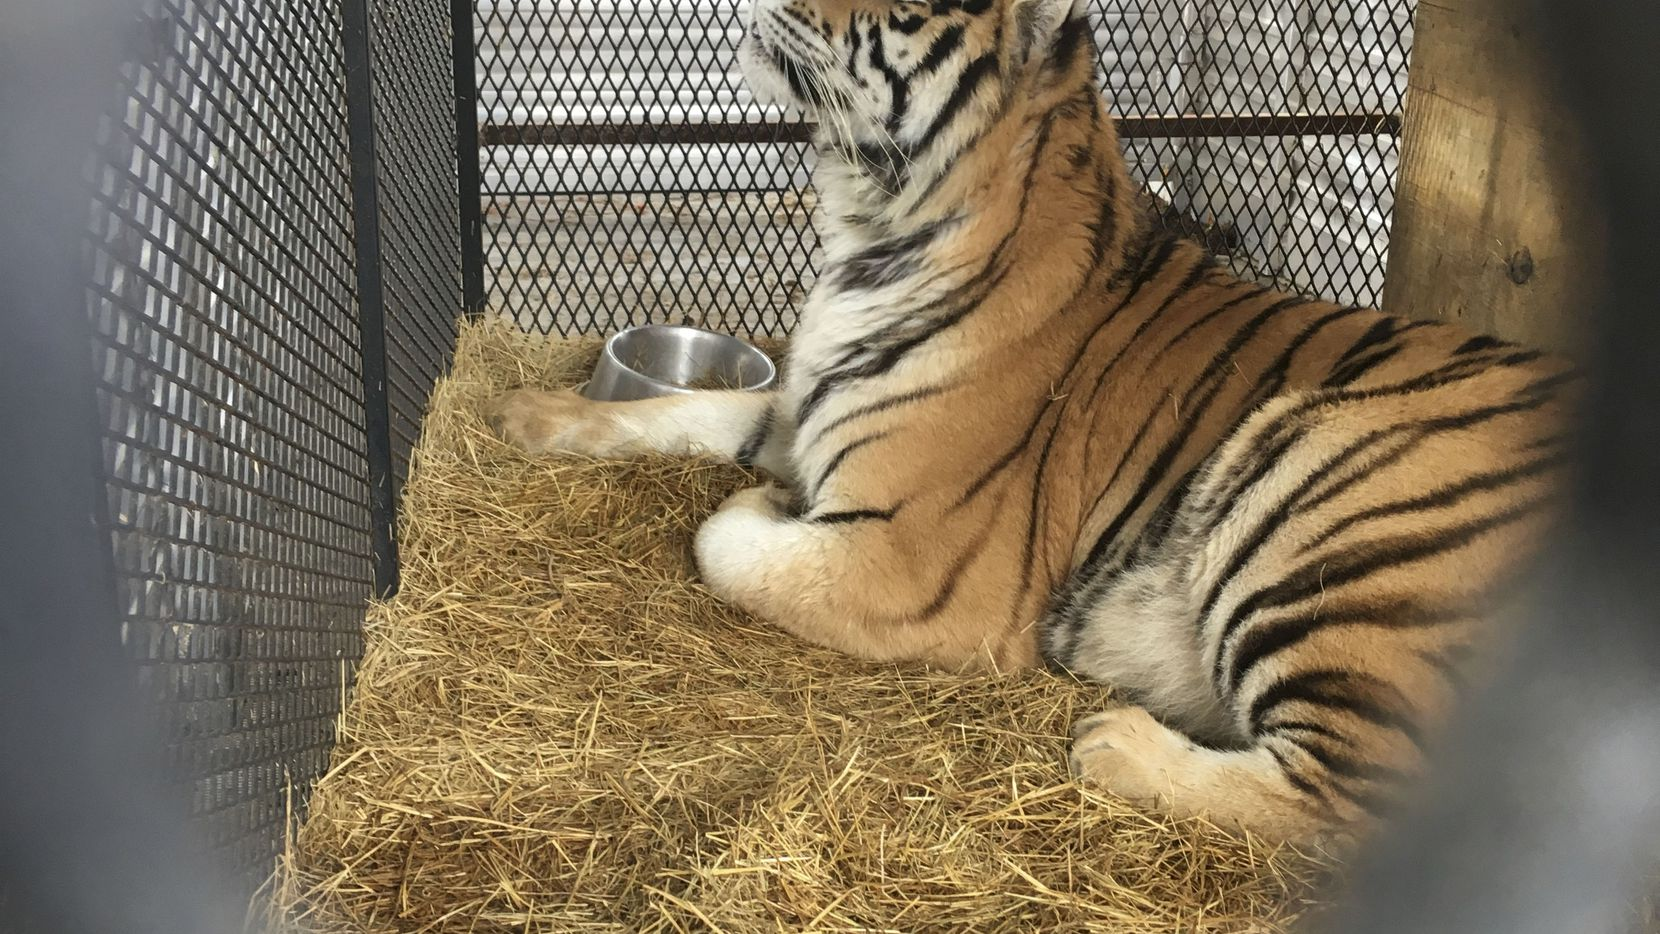 A tiger found at a Houston home is being prepared for transport from Houston to the Cleveland Amory Black Beauty Ranch on Tuesday. The tiger was found in a cage in the garage of a home in the 9400 block of East Avenue J after an anonymous tipster called 311 to report the animal.